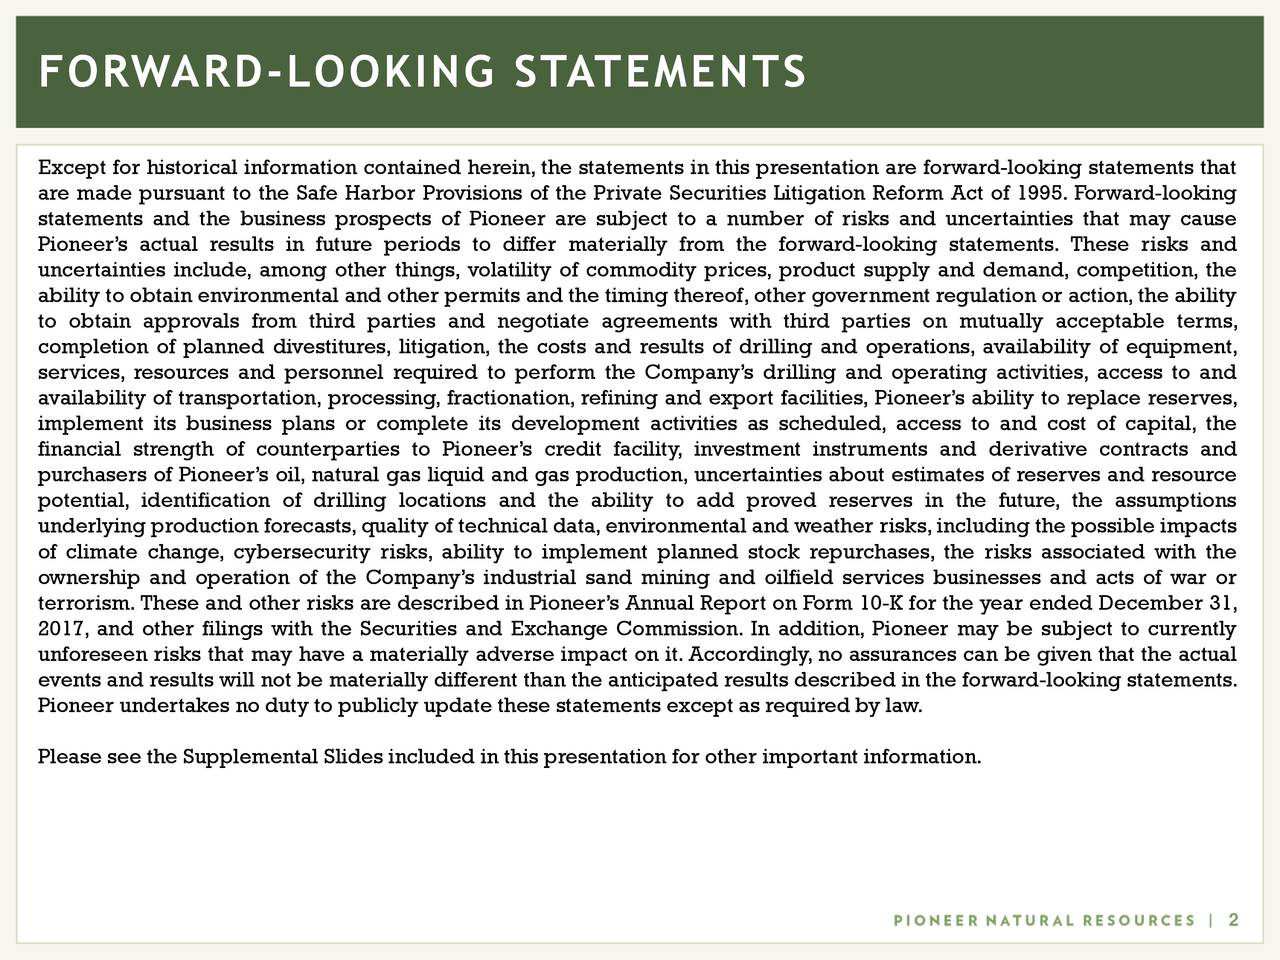 Except for historical information contained herein, the statements in this presentation are forward-looking statements that are made pursuant to the Safe Harbor Provisions of the Private Securities Litigation Reform Act of 1995. Forward-looking statements and the business prospects of Pioneer are subject to a number of risks and uncertainties that may cause Pioneer's actual results in future periods to differ materially from the forward-looking statements. These risks and uncertainties include, among other things, volatility of commodity prices, product supply and demand, competition, the ability to obtain environmental and other permits and the timing thereof,other government regulation or action,the ability to obtain approvals from third parties and negotiate agreements with third parties on mutually acceptable terms, completion of planned divestitures, litigation, the costs and results of drilling and operations, availability of equipment, services, resources and personnel required to perform the Company's drilling and operating activities, access to and availability of transportation, processing, fractionation, refining and export facilities, Pioneer's ability to replace reserves, implement its business plans or complete its development activities as scheduled, access to and cost of capital, the financial strength of counterparties to Pioneer's credit facility, investment instruments and derivative contracts and purchasers of Pioneer's oil, natural gas liquid and gas production, uncertainties about estimates of reserves and resource potential, identification of drilling locations and the ability to add proved reserves in the future, the assumptions underlying production forecasts,quality of technical data,environmental and weather risks,including the possible impacts of climate change, cybersecurity risks, ability to implement planned stock repurchases, the risks associated with the ownership and operation of the Company's industrial sand mining and oilfield ser